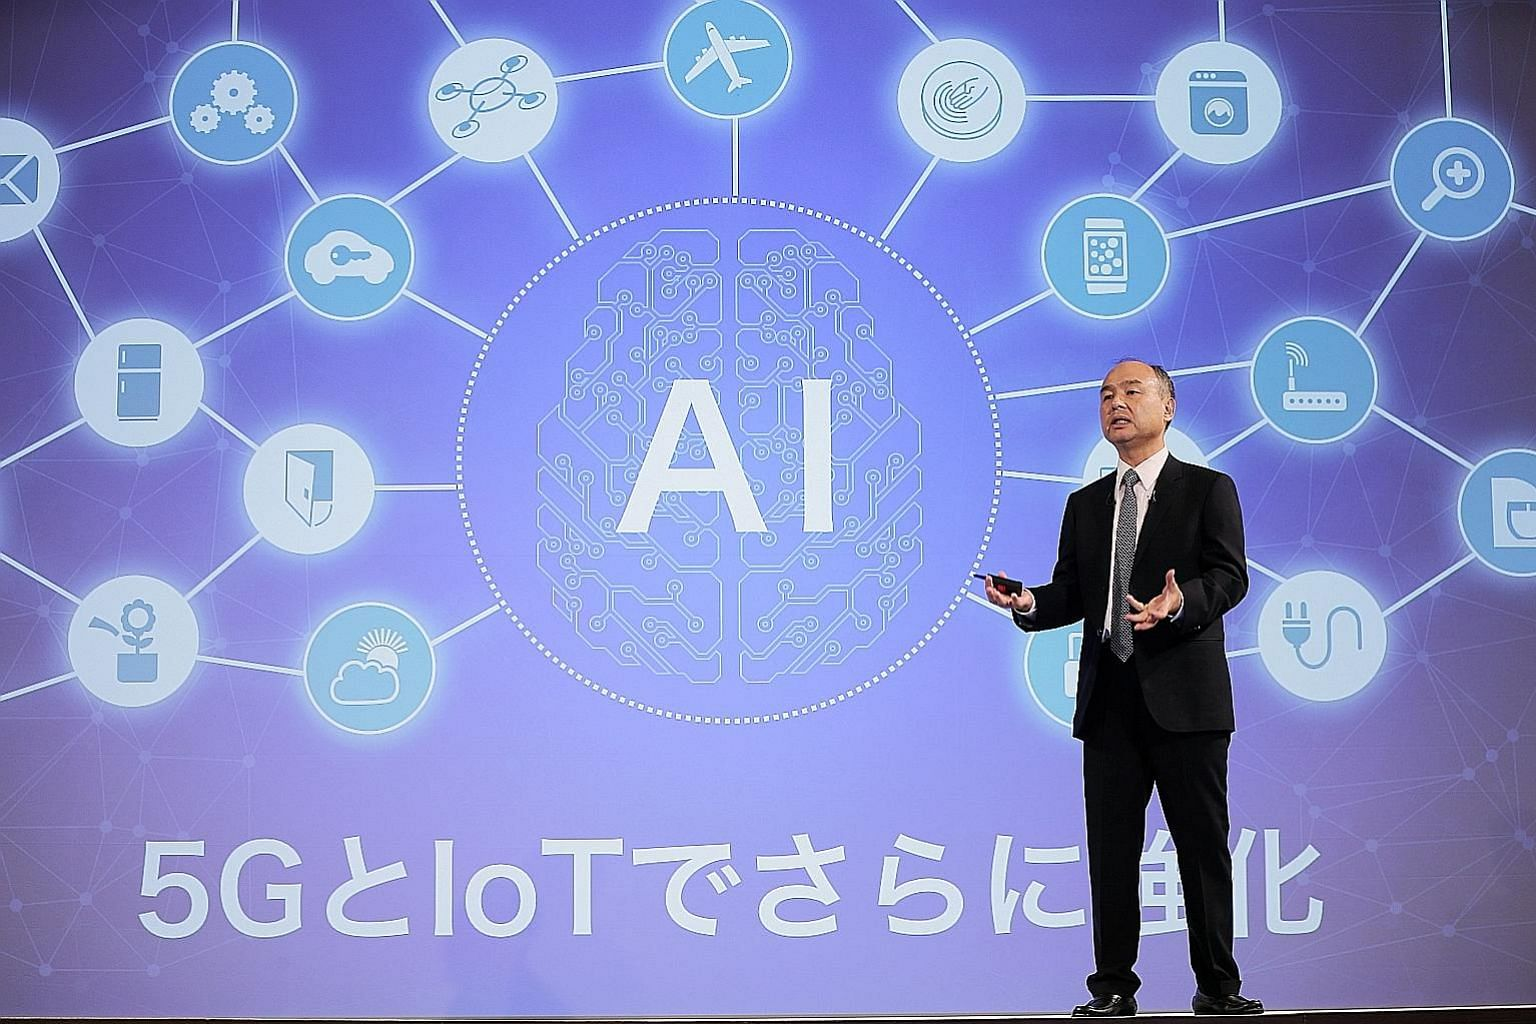 Mr Masayoshi Son, chairman and chief executive officer of SoftBank Group, speaking at an earnings presentation in Tokyo on Thursday, when he said the firm booked a US$3.8 billion (S$5.1 billion) gain from its stake in Uber Technologies. The day after